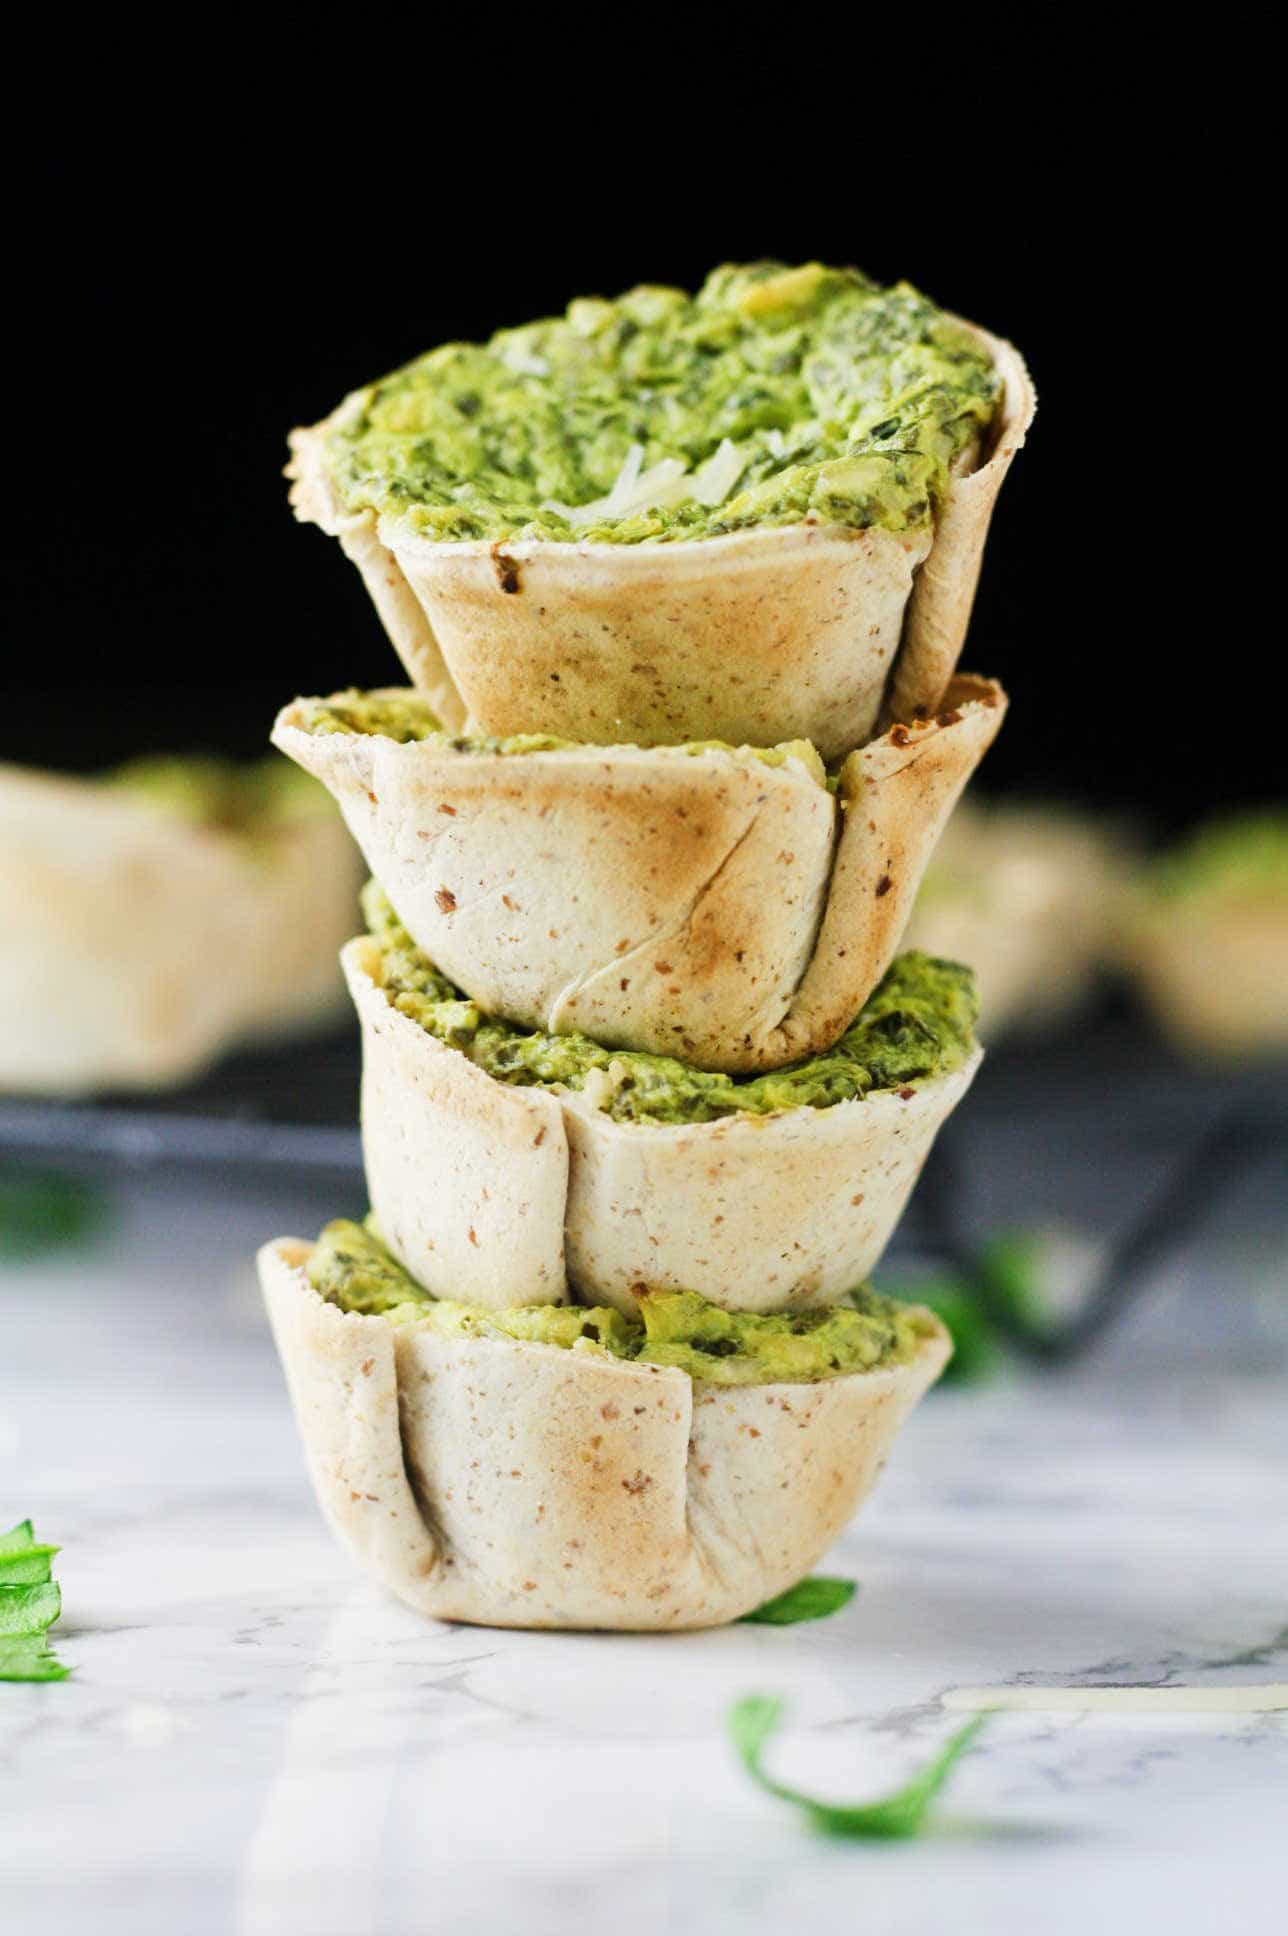 Low Carb Spinach Artichoke Dip Bites. Made with Xtreme Wellness wraps. A super easy, guilt-free crowd pleaser! www.itscheatdayeveryday.com